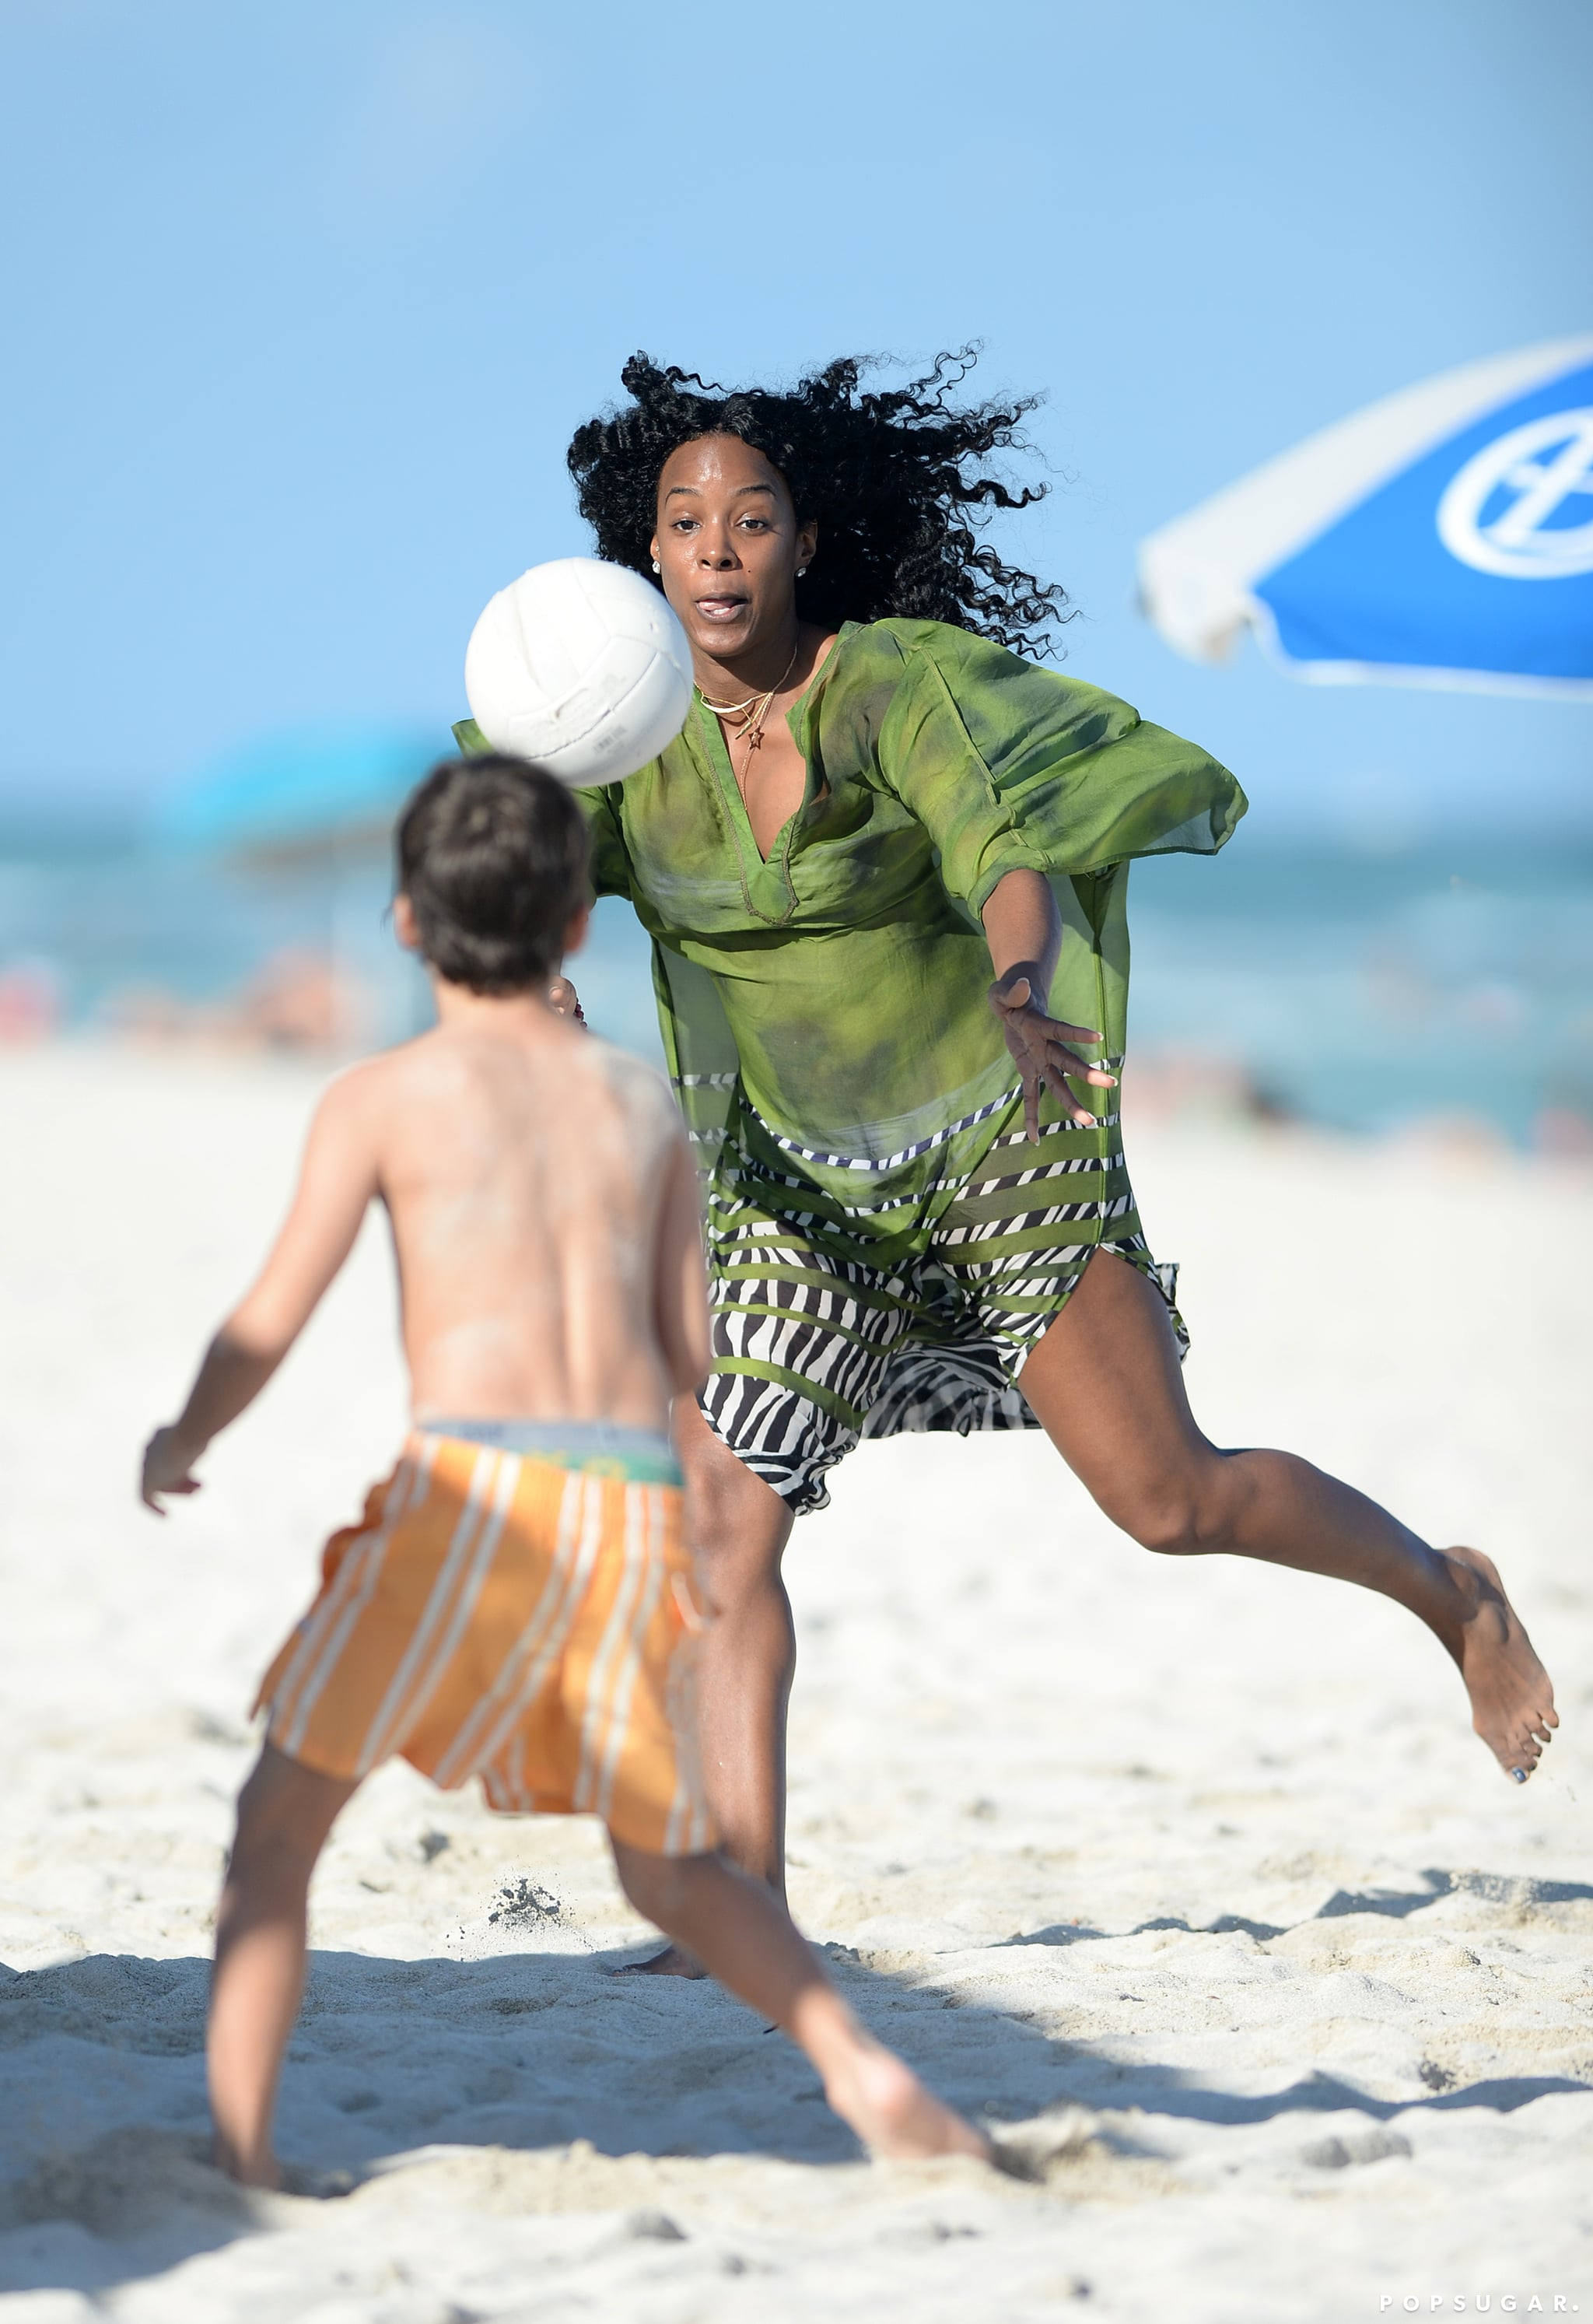 Kelly played soccer with kids on the beach.